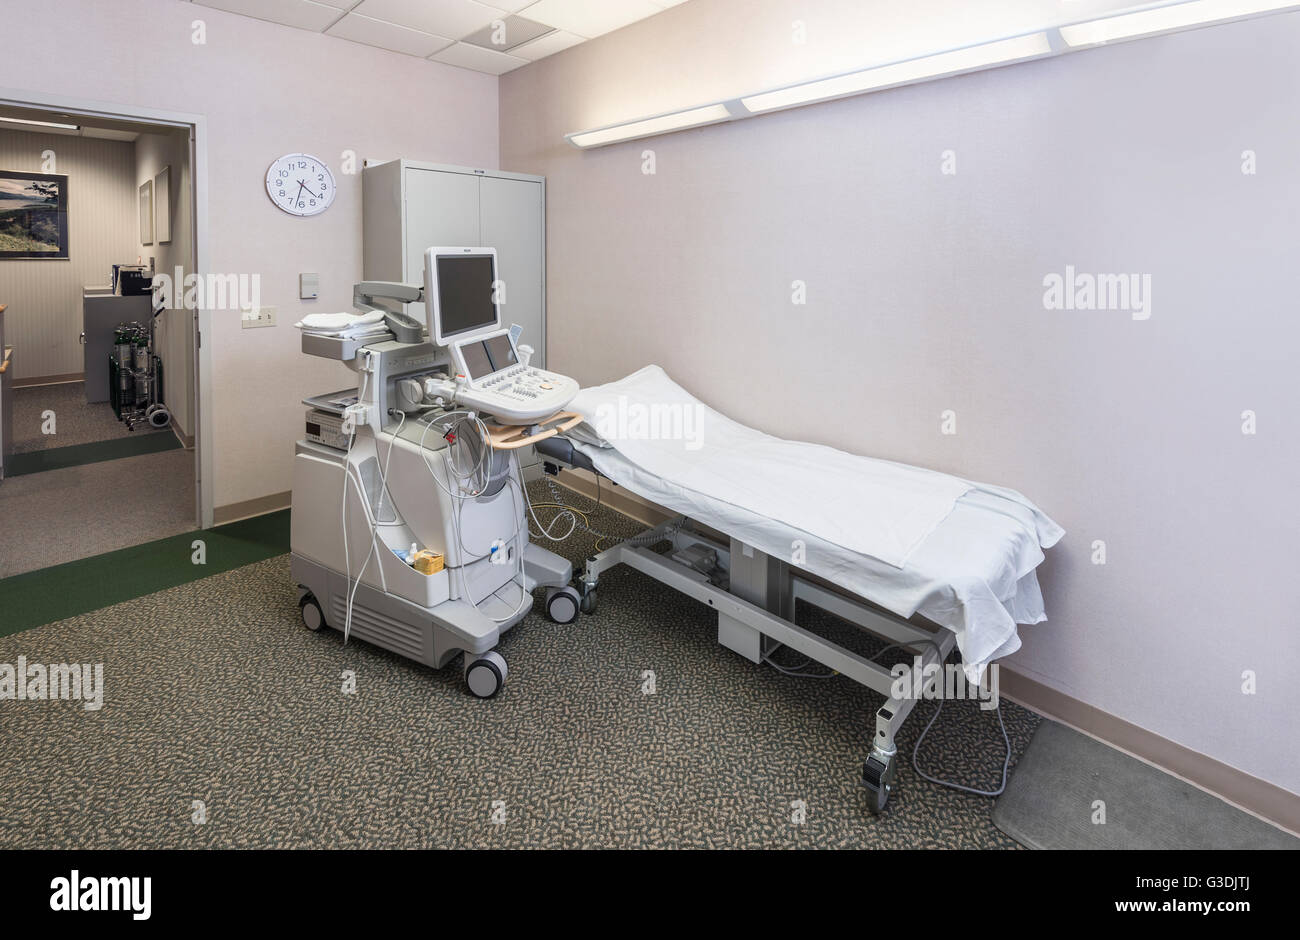 Ultrasound Machine In Doctor's Office - Stock Image